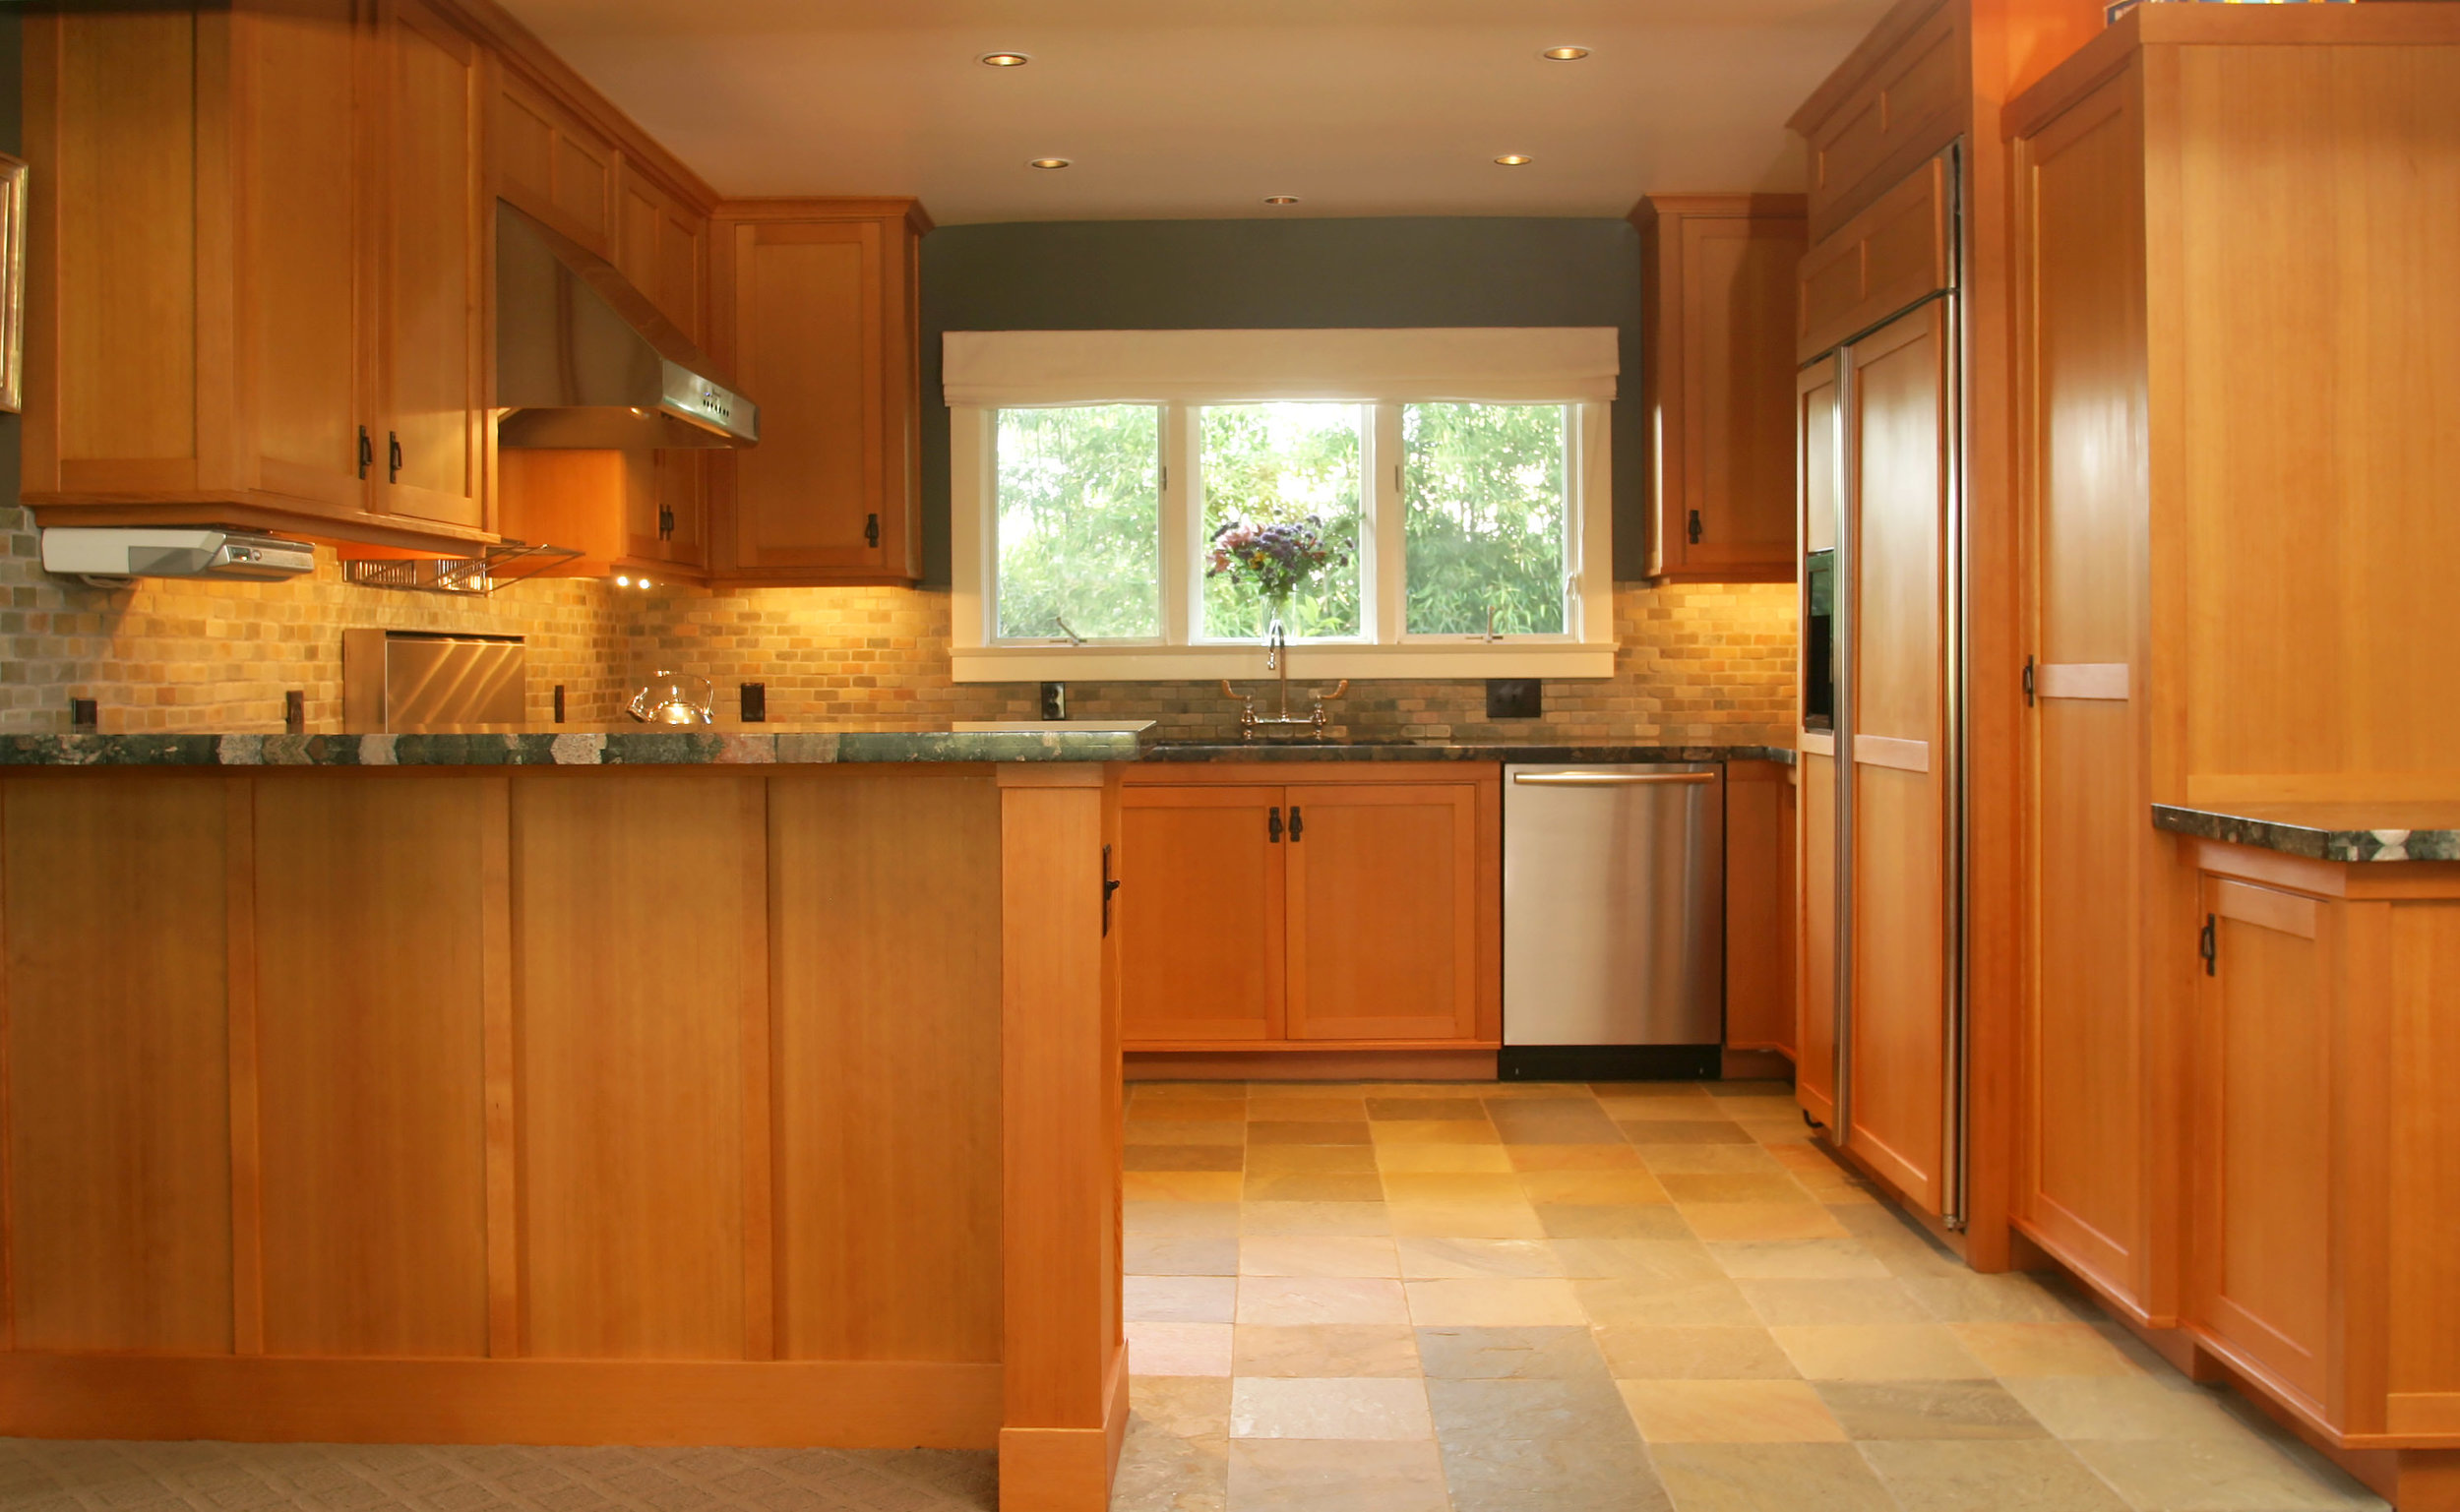 Honore-Cabinetry-custom-kitchen-douglas-fir-art-crafts1.jpg